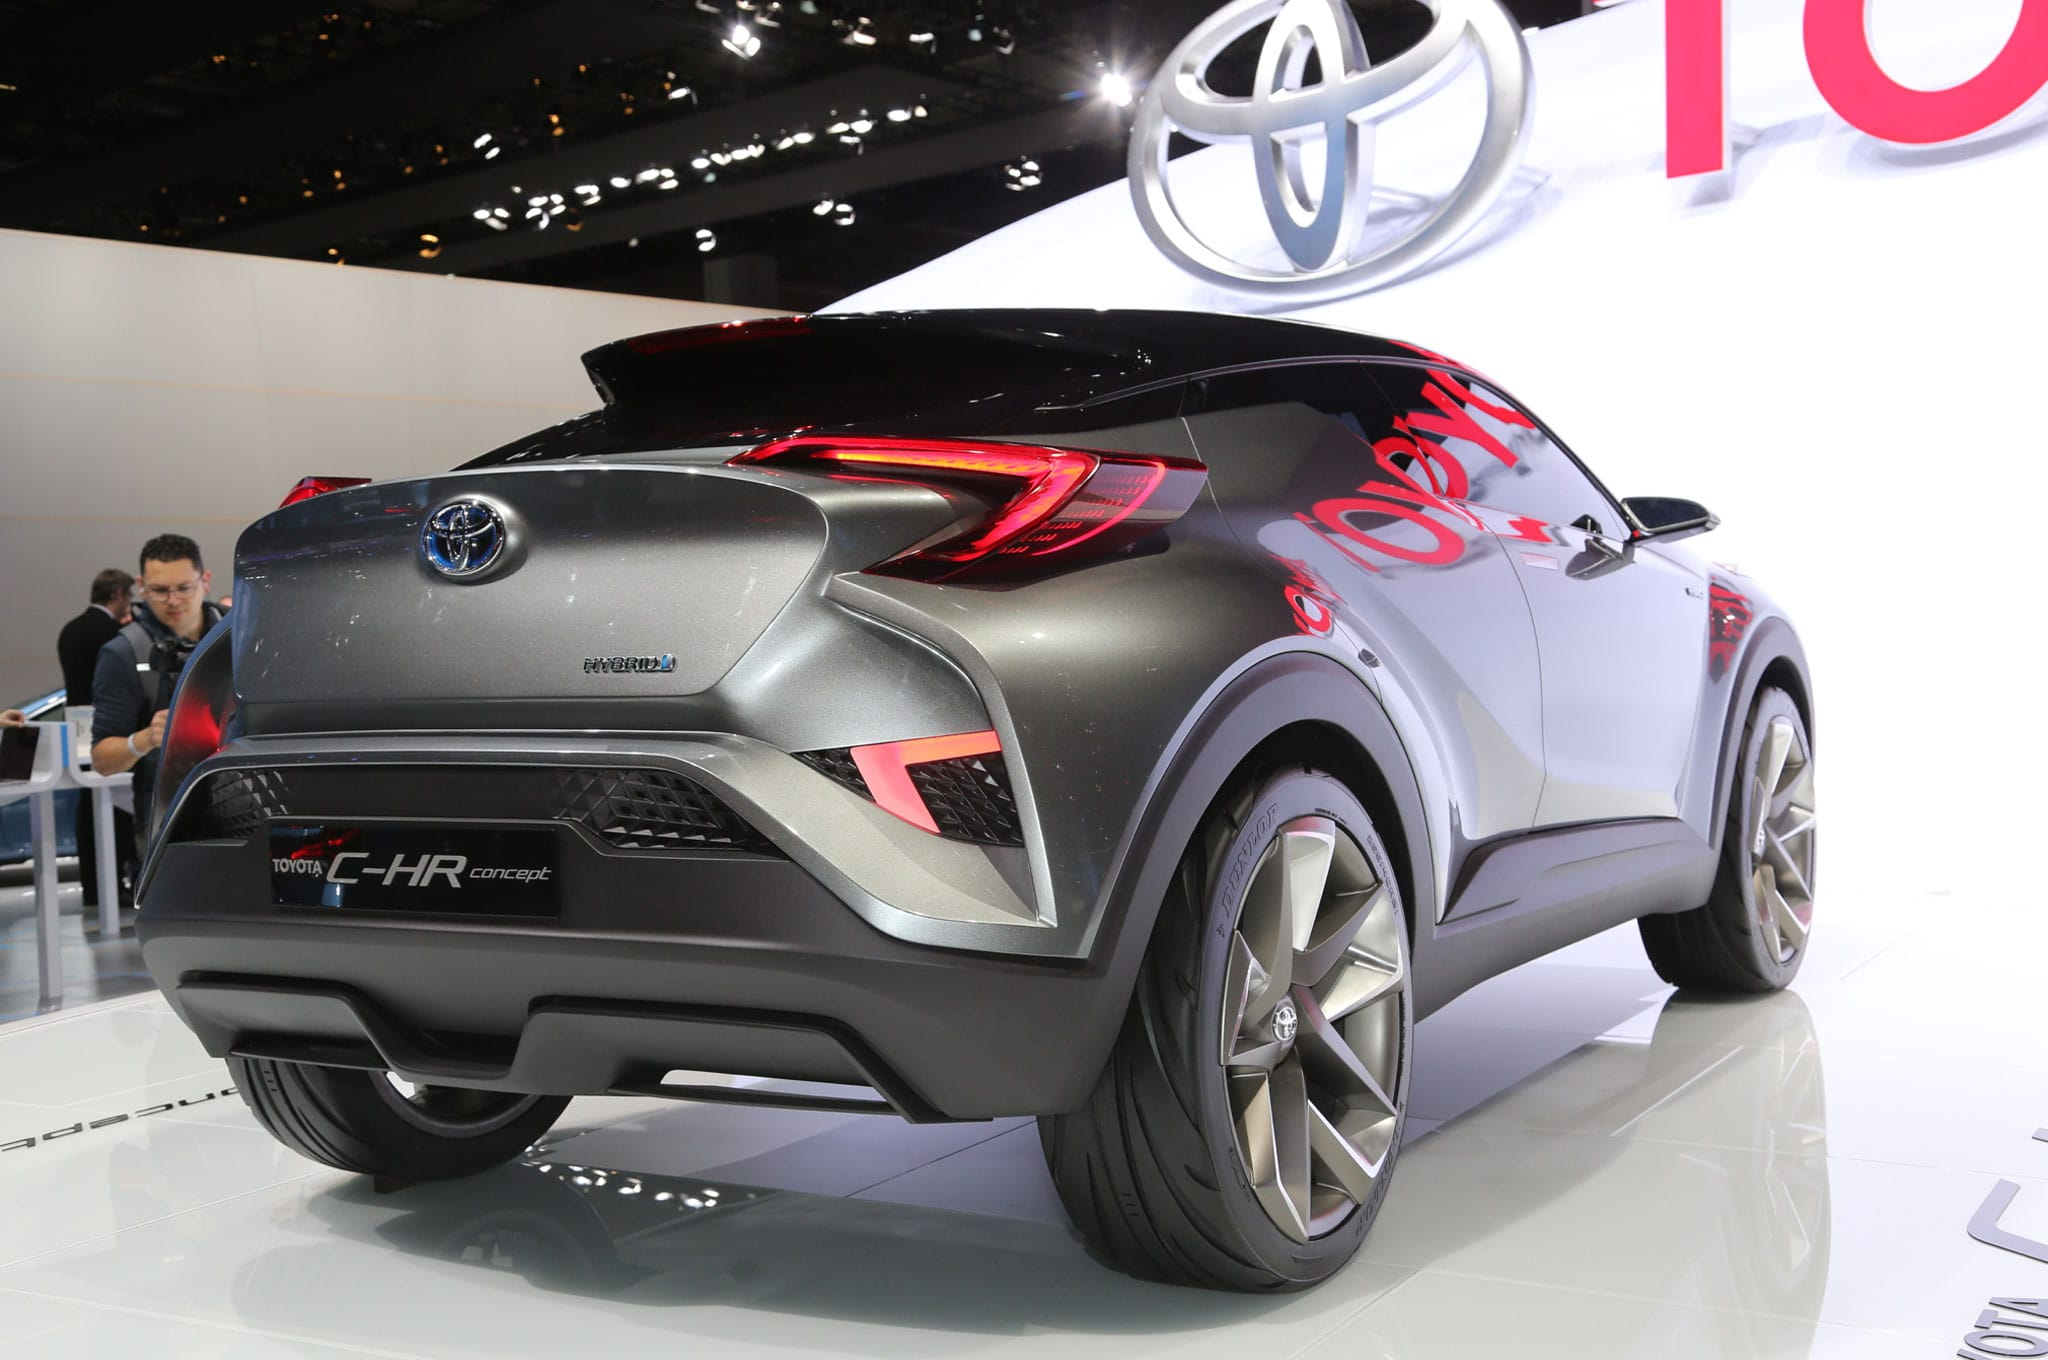 Toyota C-HR High